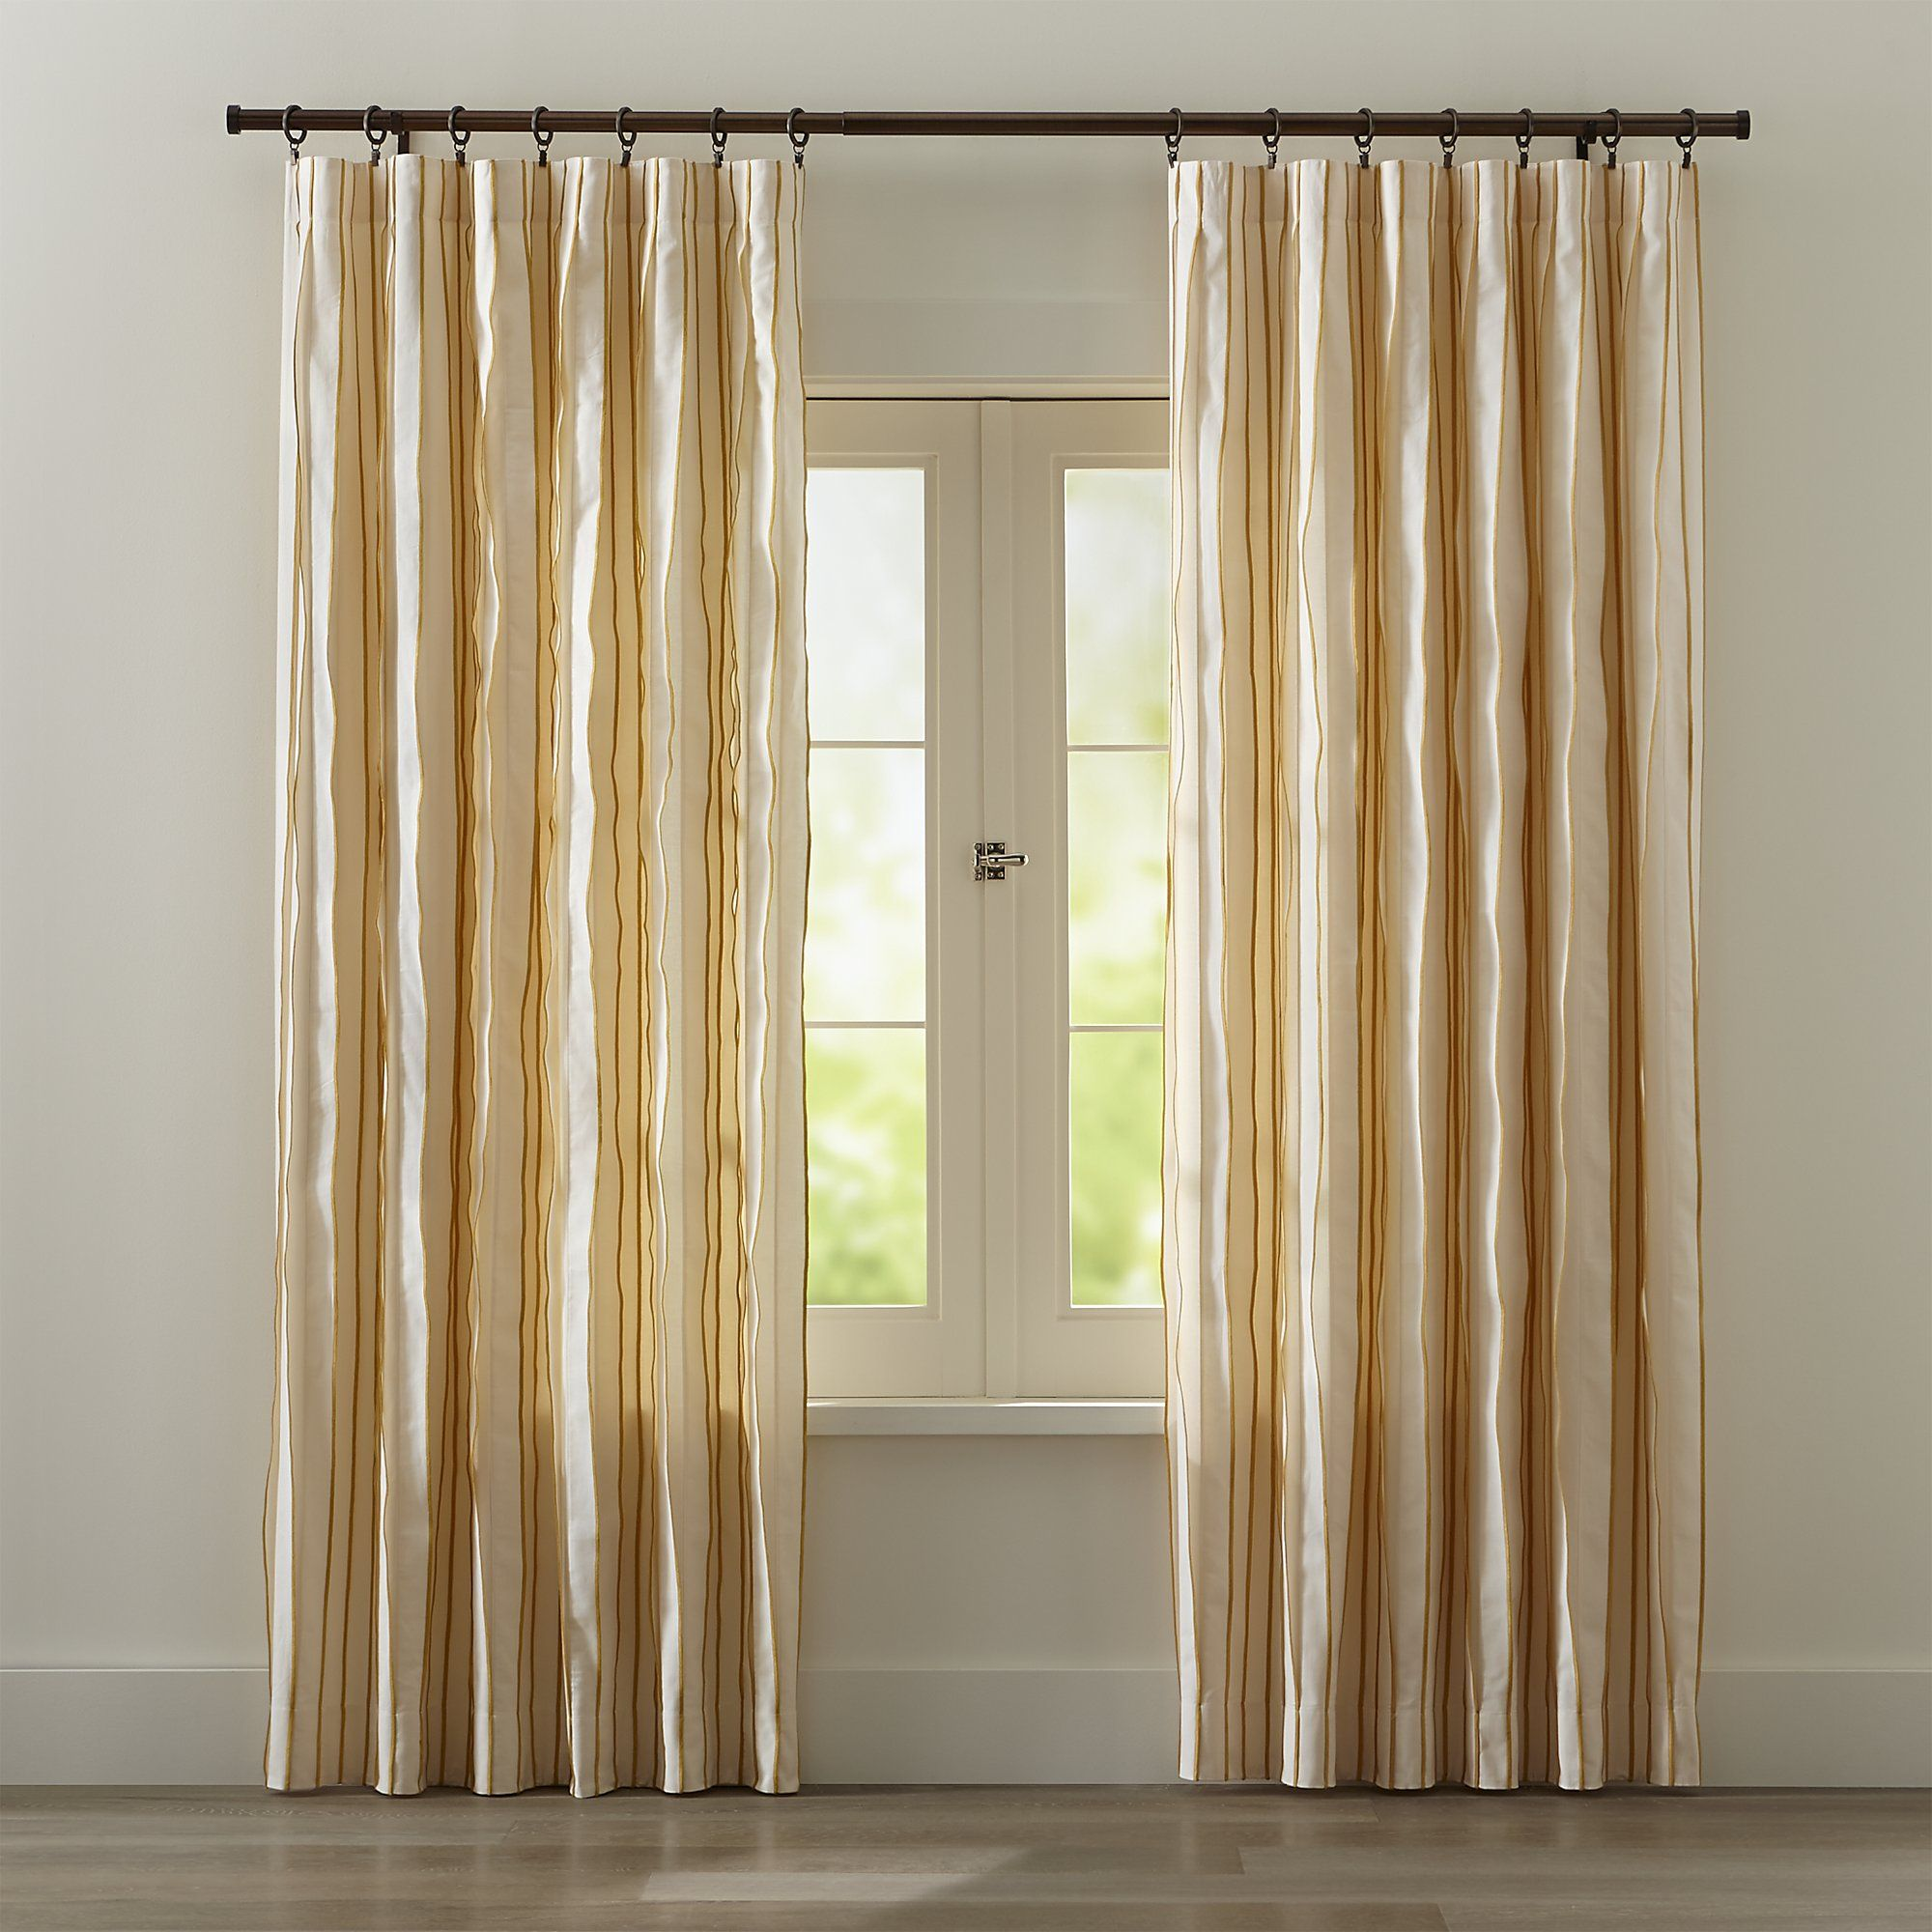 dark and striped stock curtains kitchen area dining wooden wallpaper photo with yellow cabinets